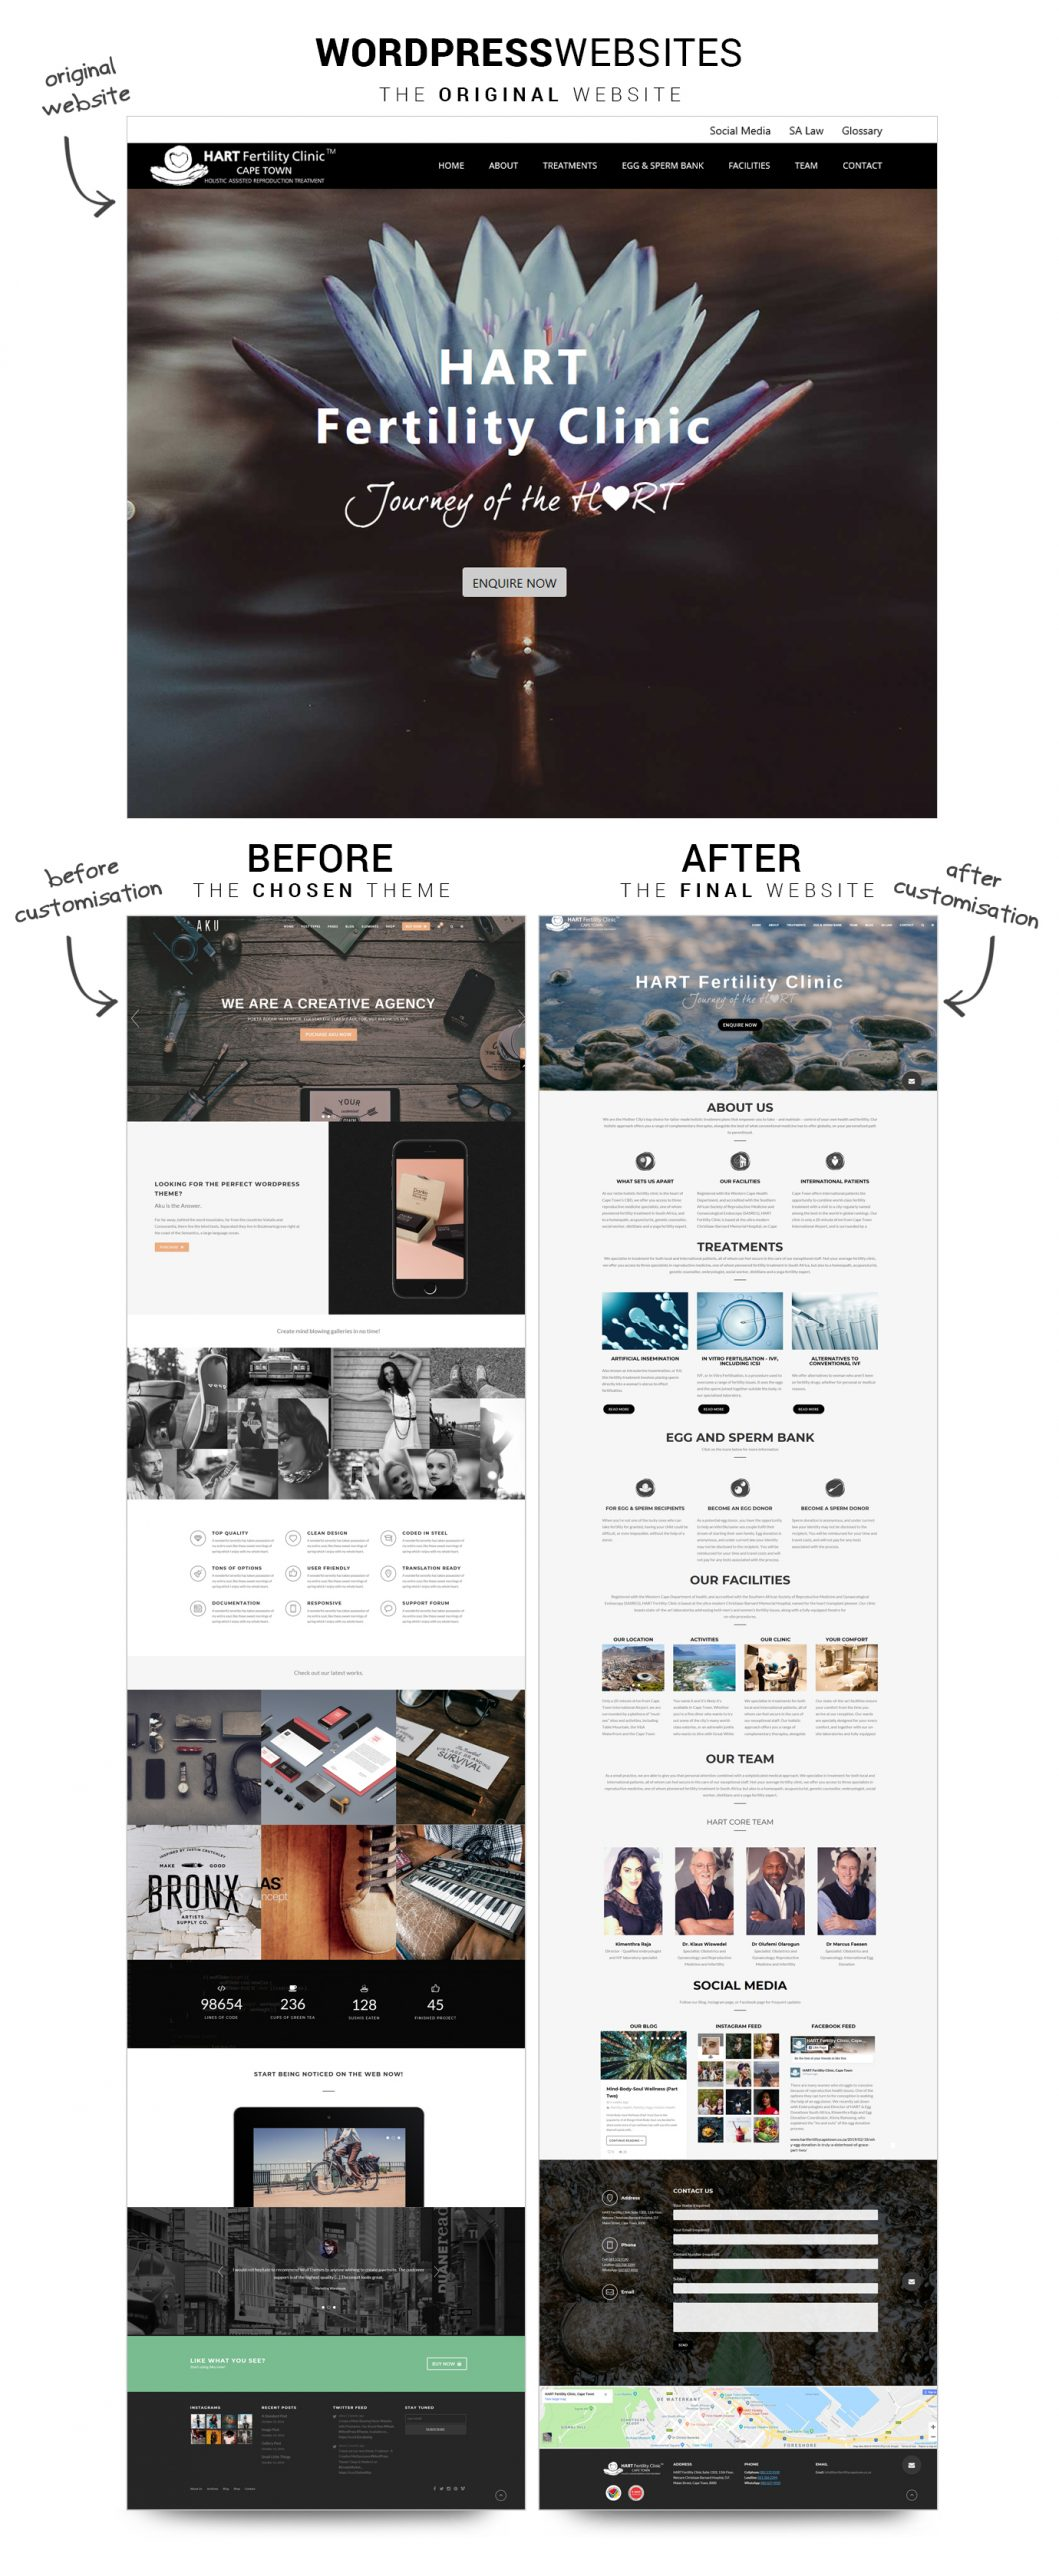 WordPress Websites Before and After